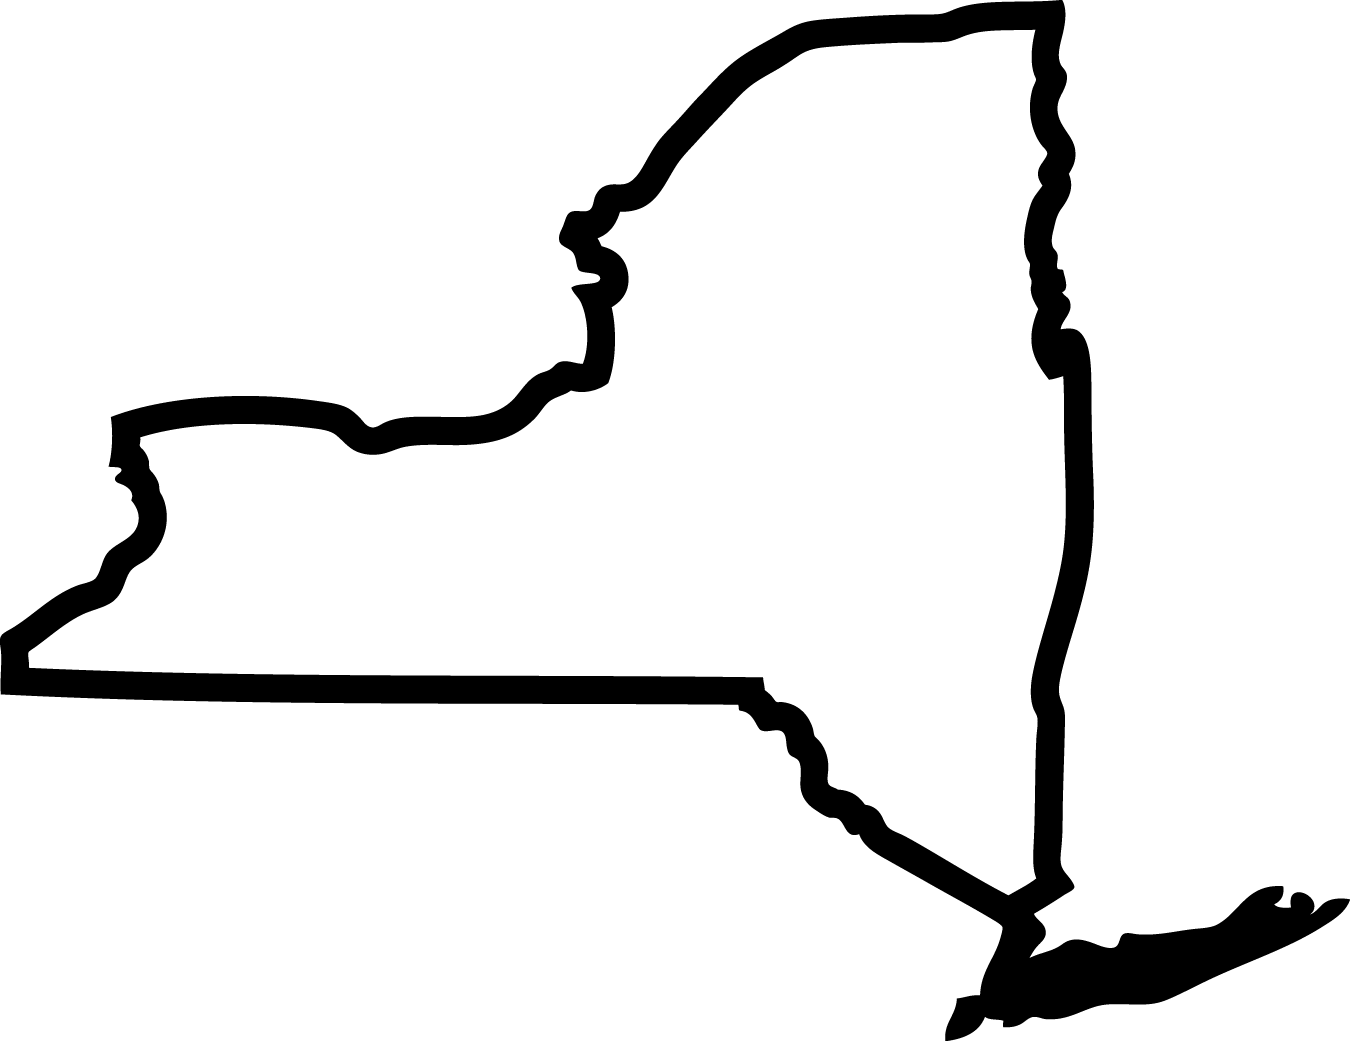 1350x1041 State Of New York Clipart